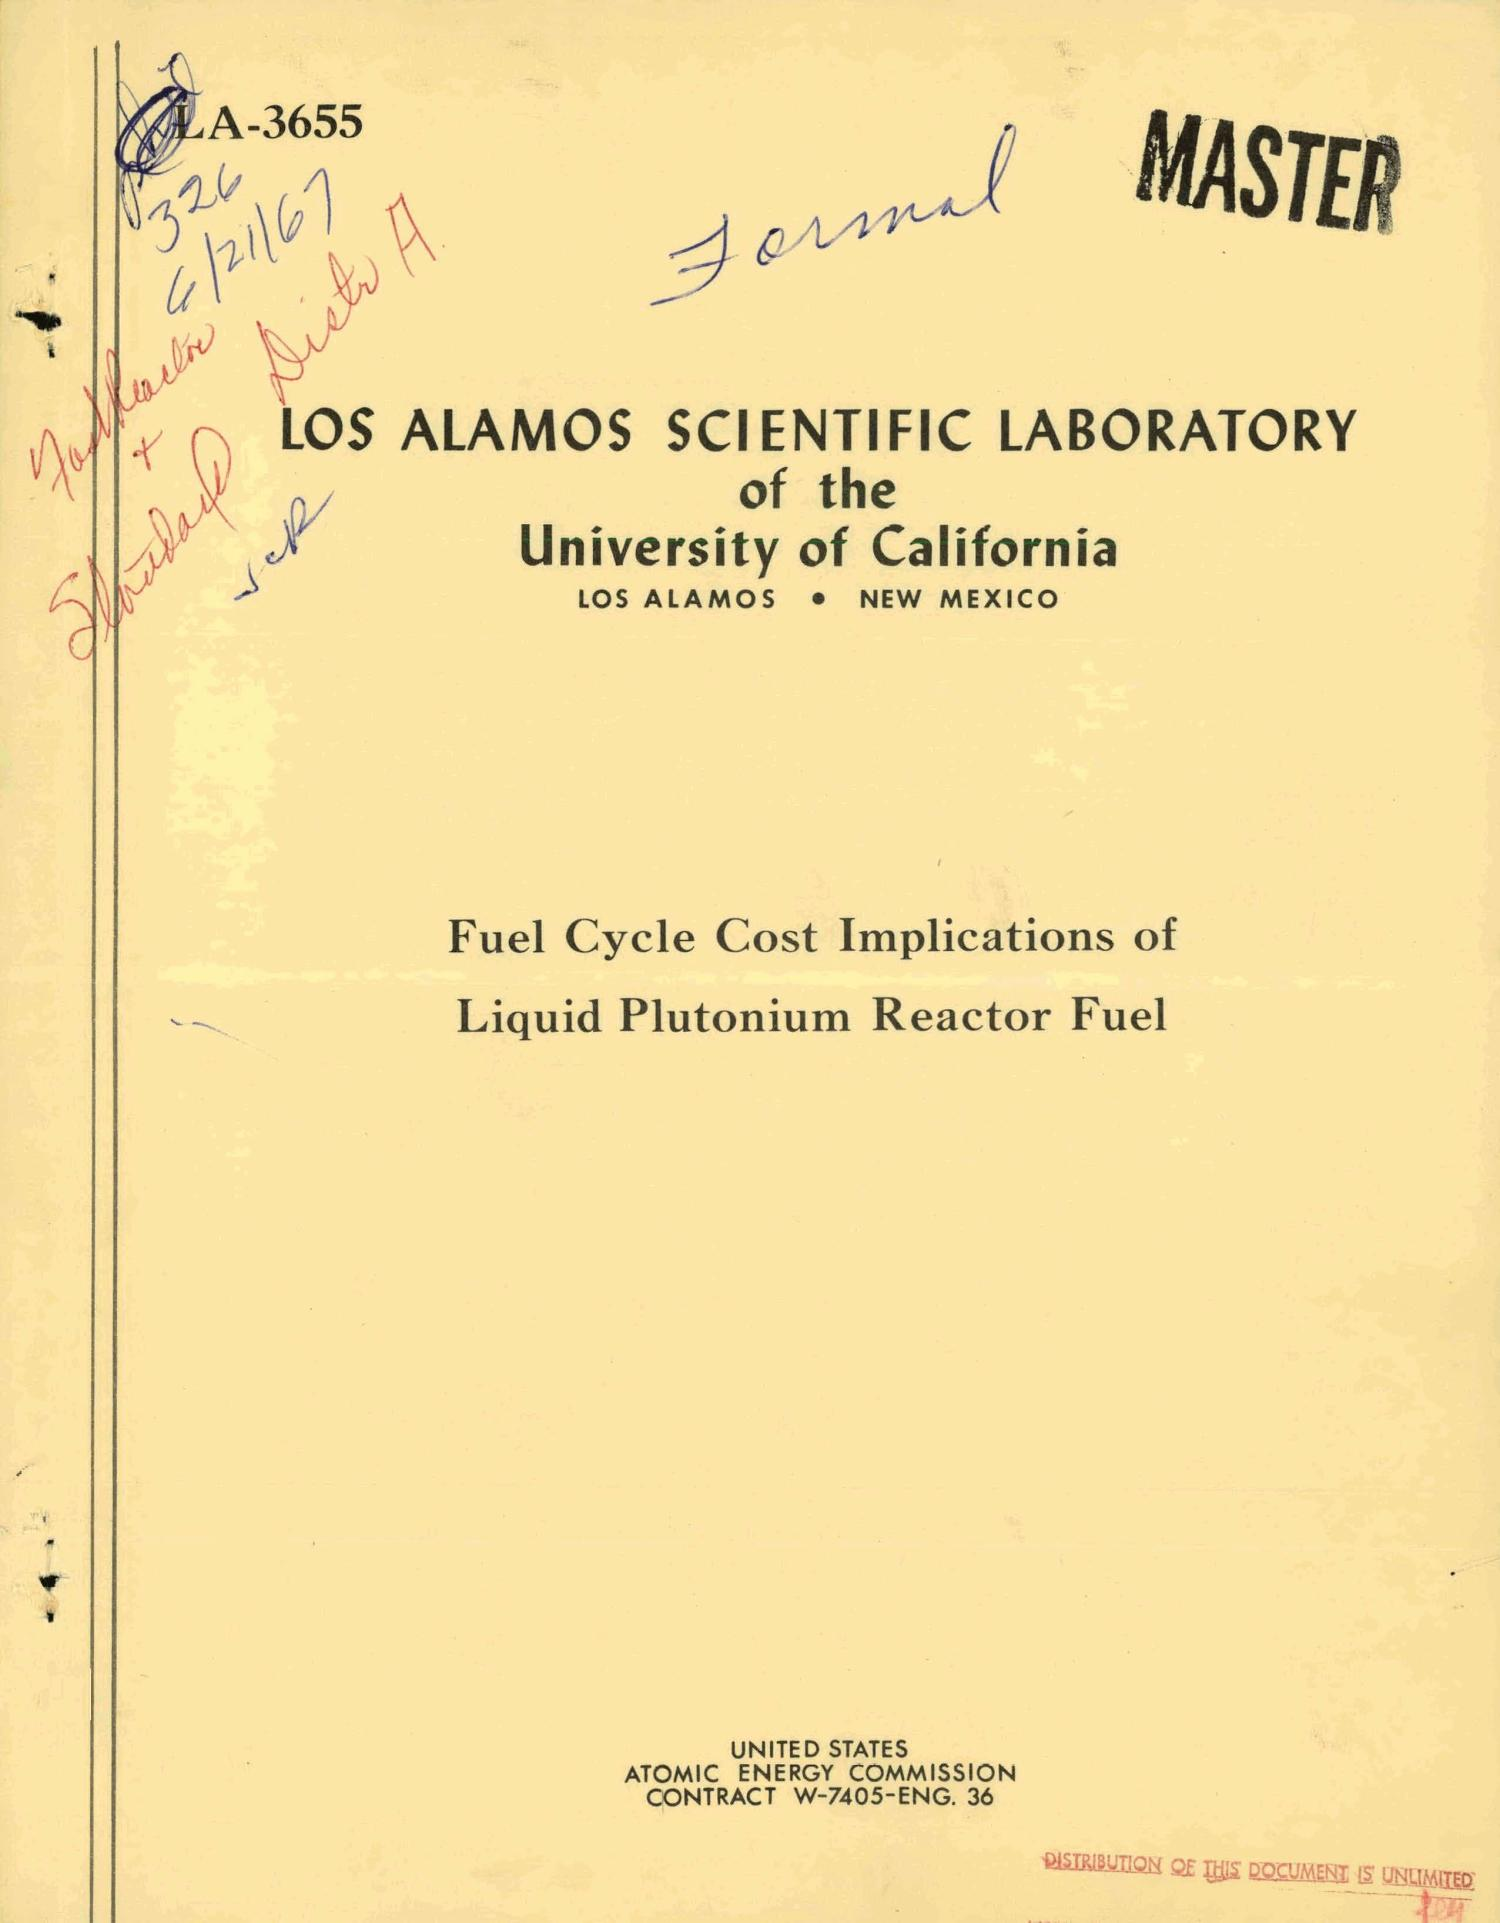 Fuel Cycle Cost Implications of Liquid Plutonium Reactor Fuel.                                                                                                      [Sequence #]: 1 of 110